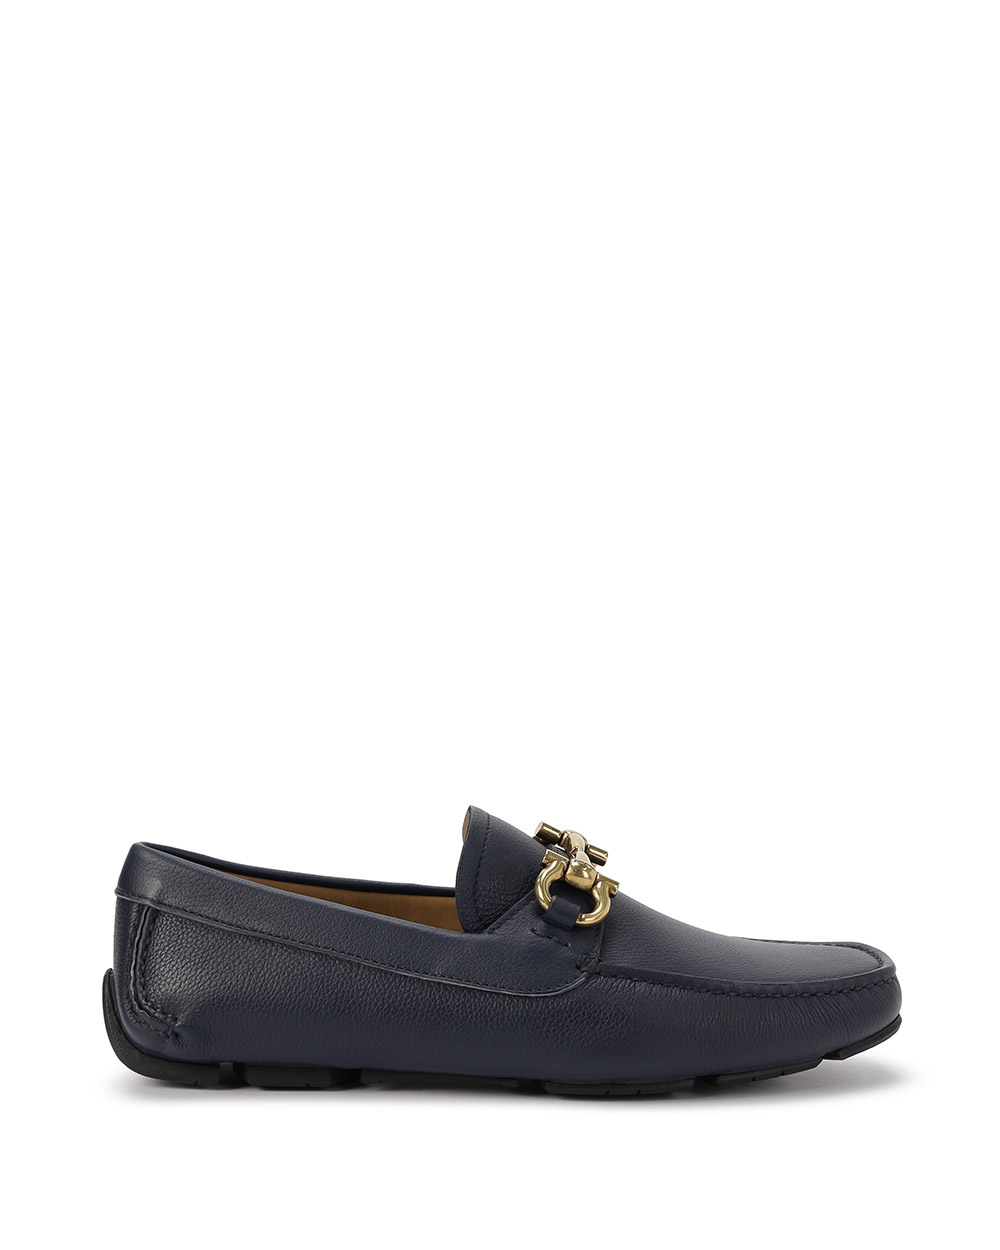 Leather Loafers With Metal Buckle